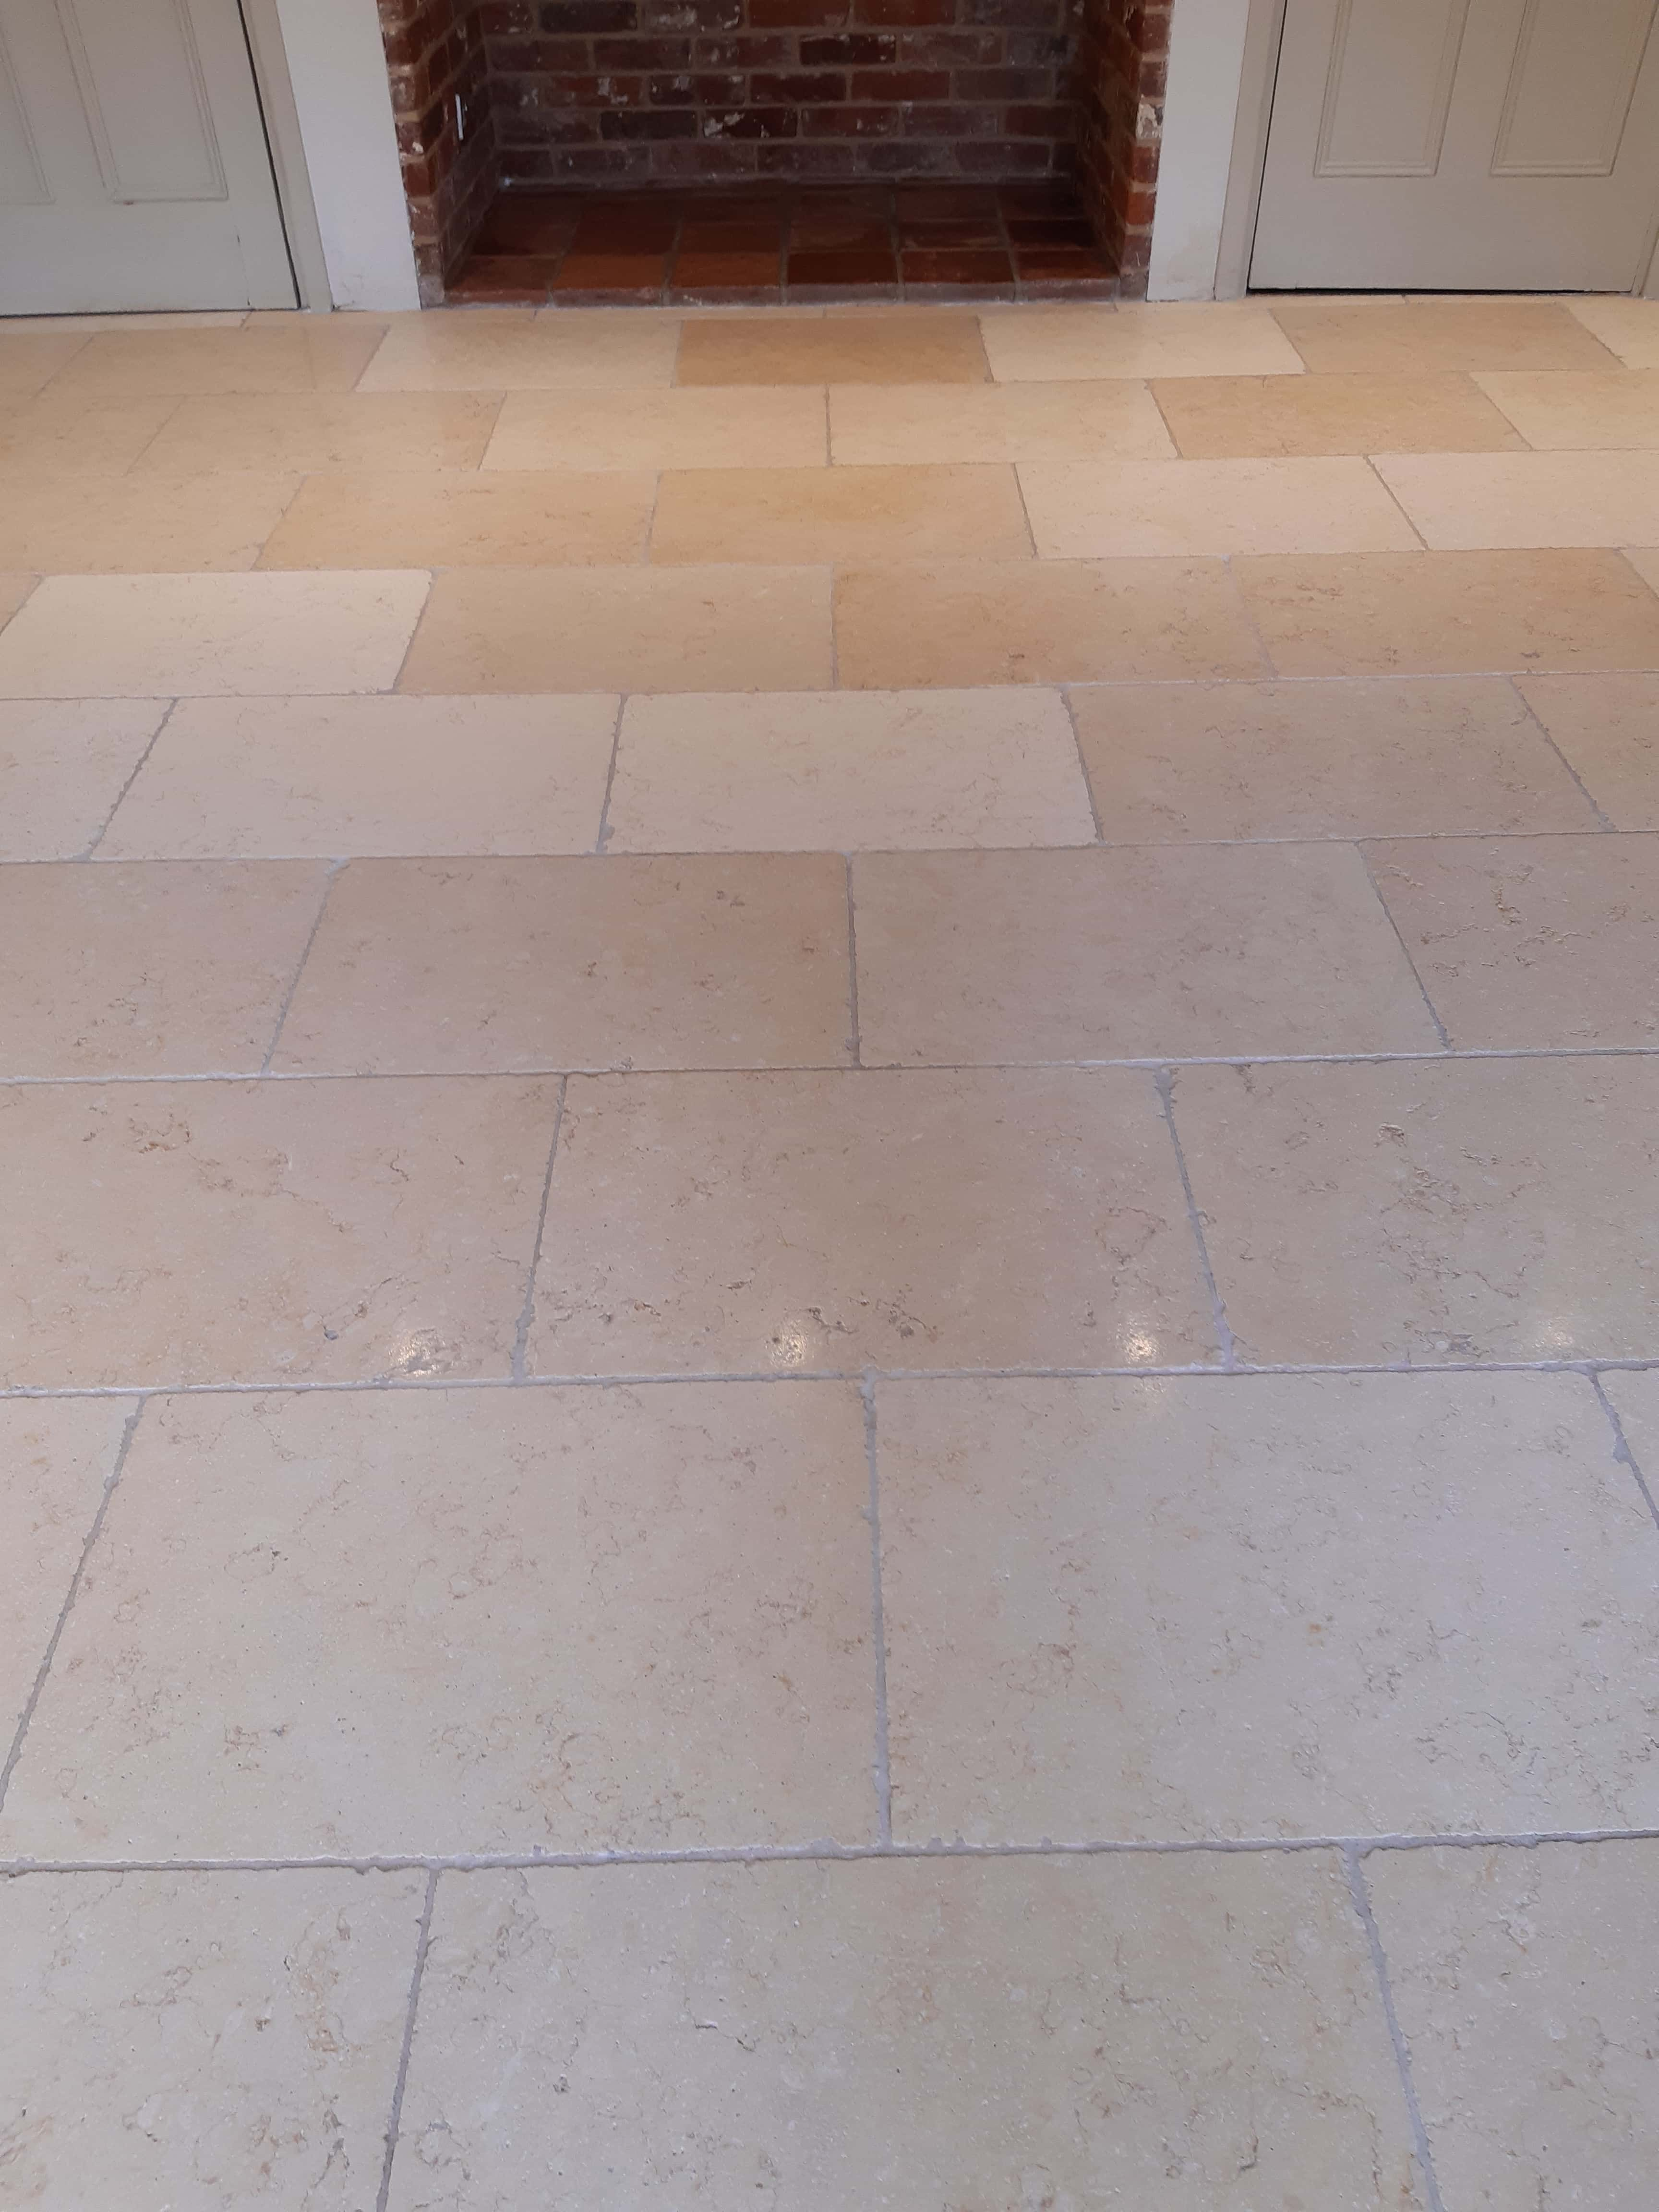 Limestone Flooring After Renovation in Silfield